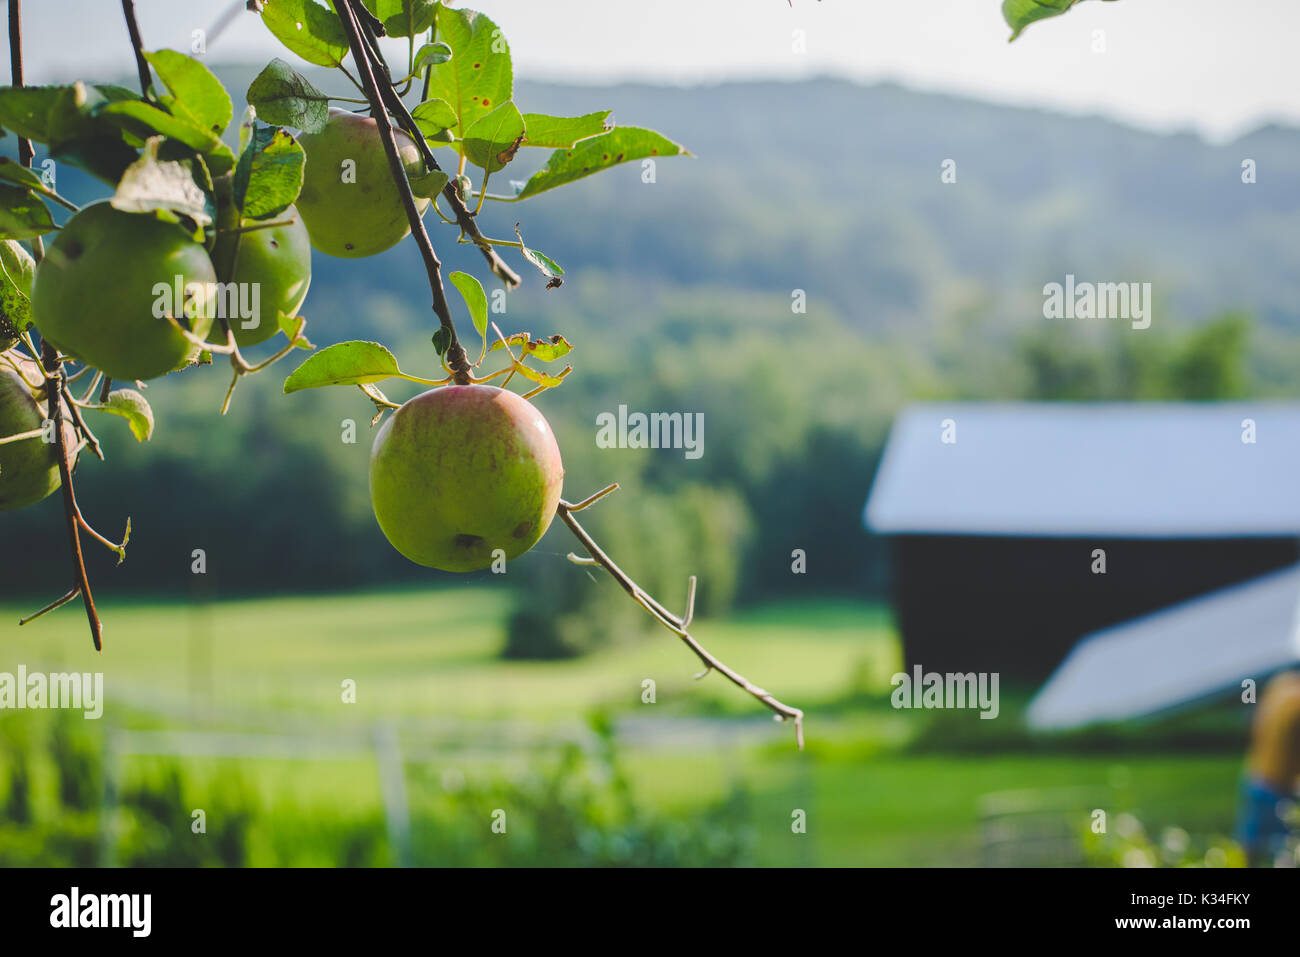 Apples on a tree in autumn. - Stock Image